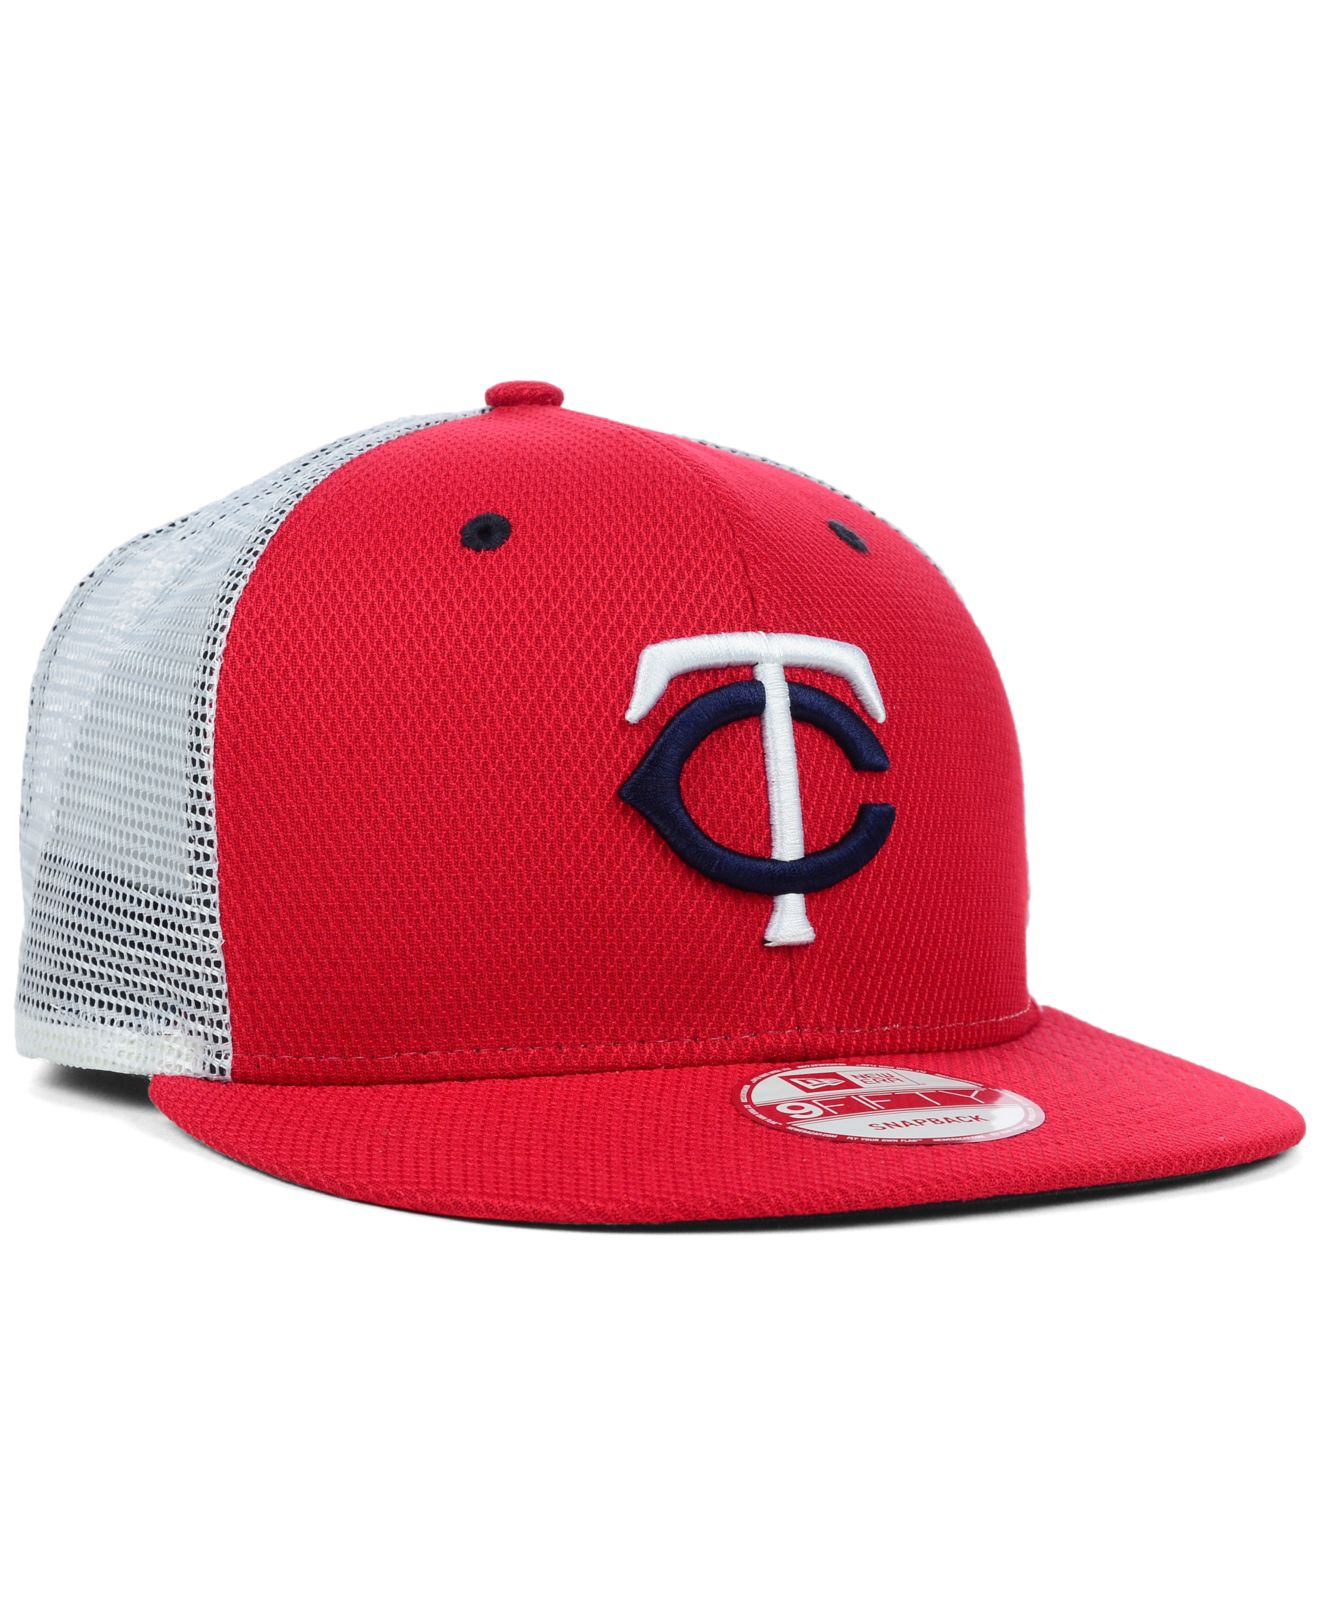 reputable site fb735 315d9 KTZ Minnesota Twins Mlb Diamond Mesh 9fifty Snapback Cap in Red for ...